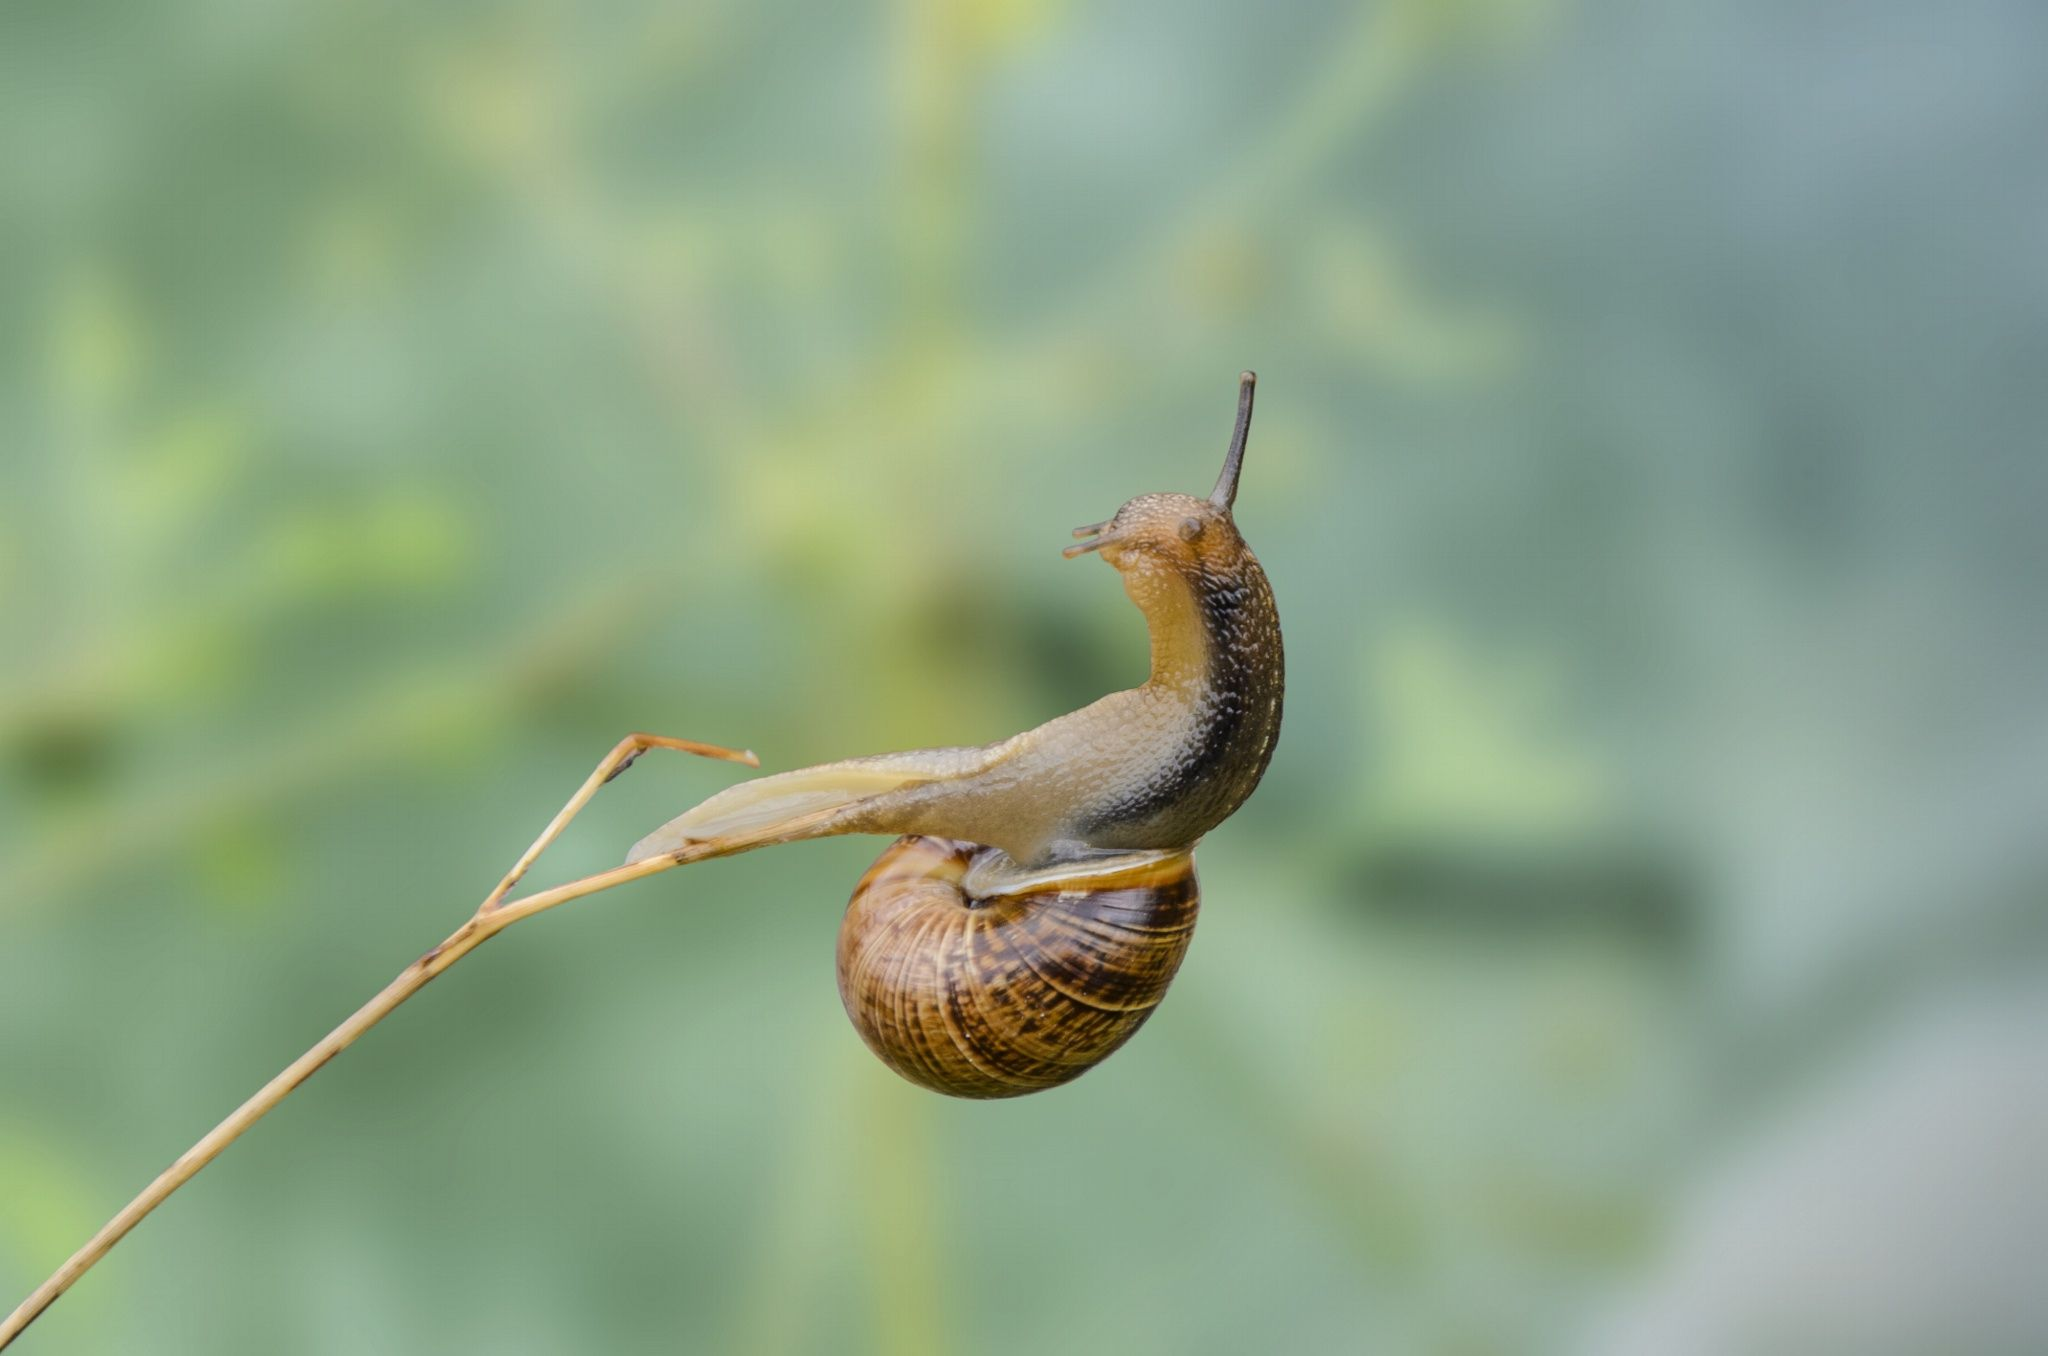 Acrobatic Snail - A snail on a blade of grass in a funny position.